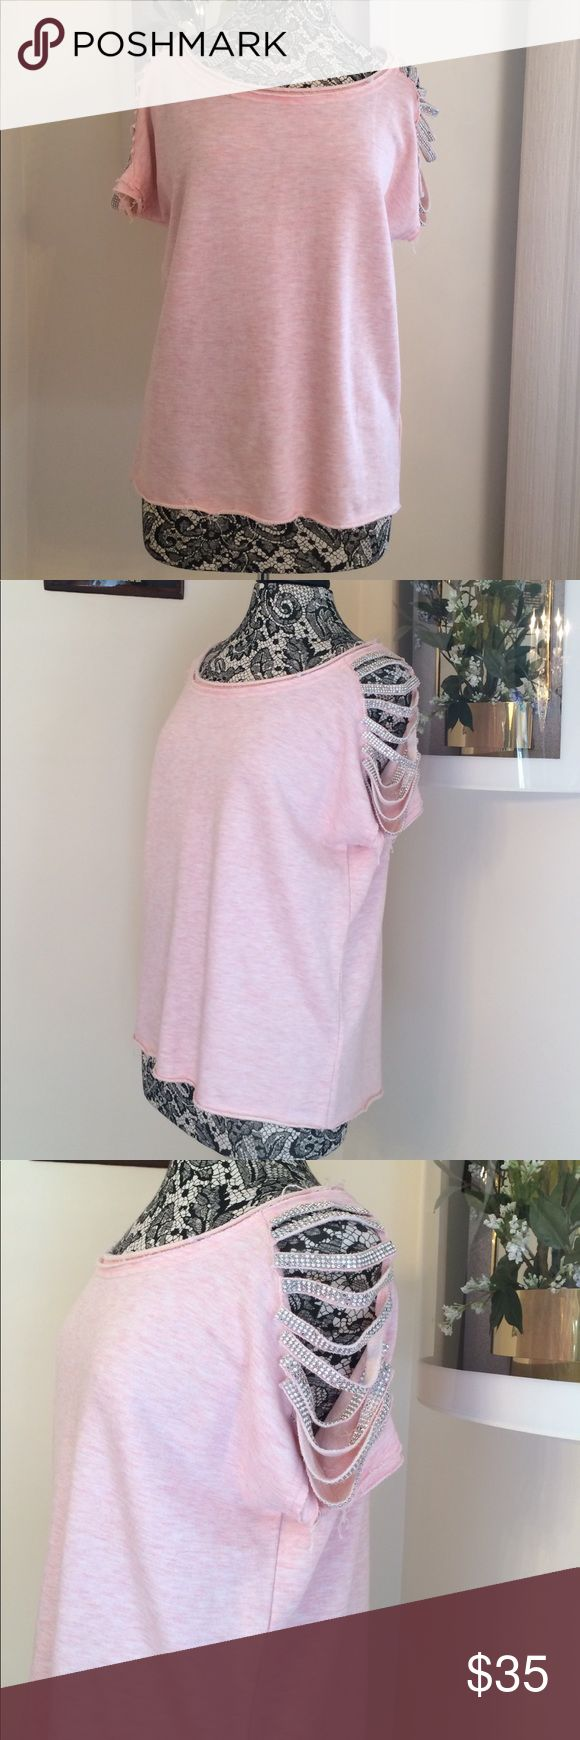 🌺🌺ITRO Rhinestone Sweatshirt Gently Used bedazzled short sleeve sweatshirt with slits in sleeves and frayed hem and boat neckline. Some minor pilling. Color is a pretty pale pink. Fabric composition 46%Polyester, 30%Cotton and 24%Rayon. ASKING PRICE OR BEST OFFER! ITRO Tops Sweatshirts & Hoodies